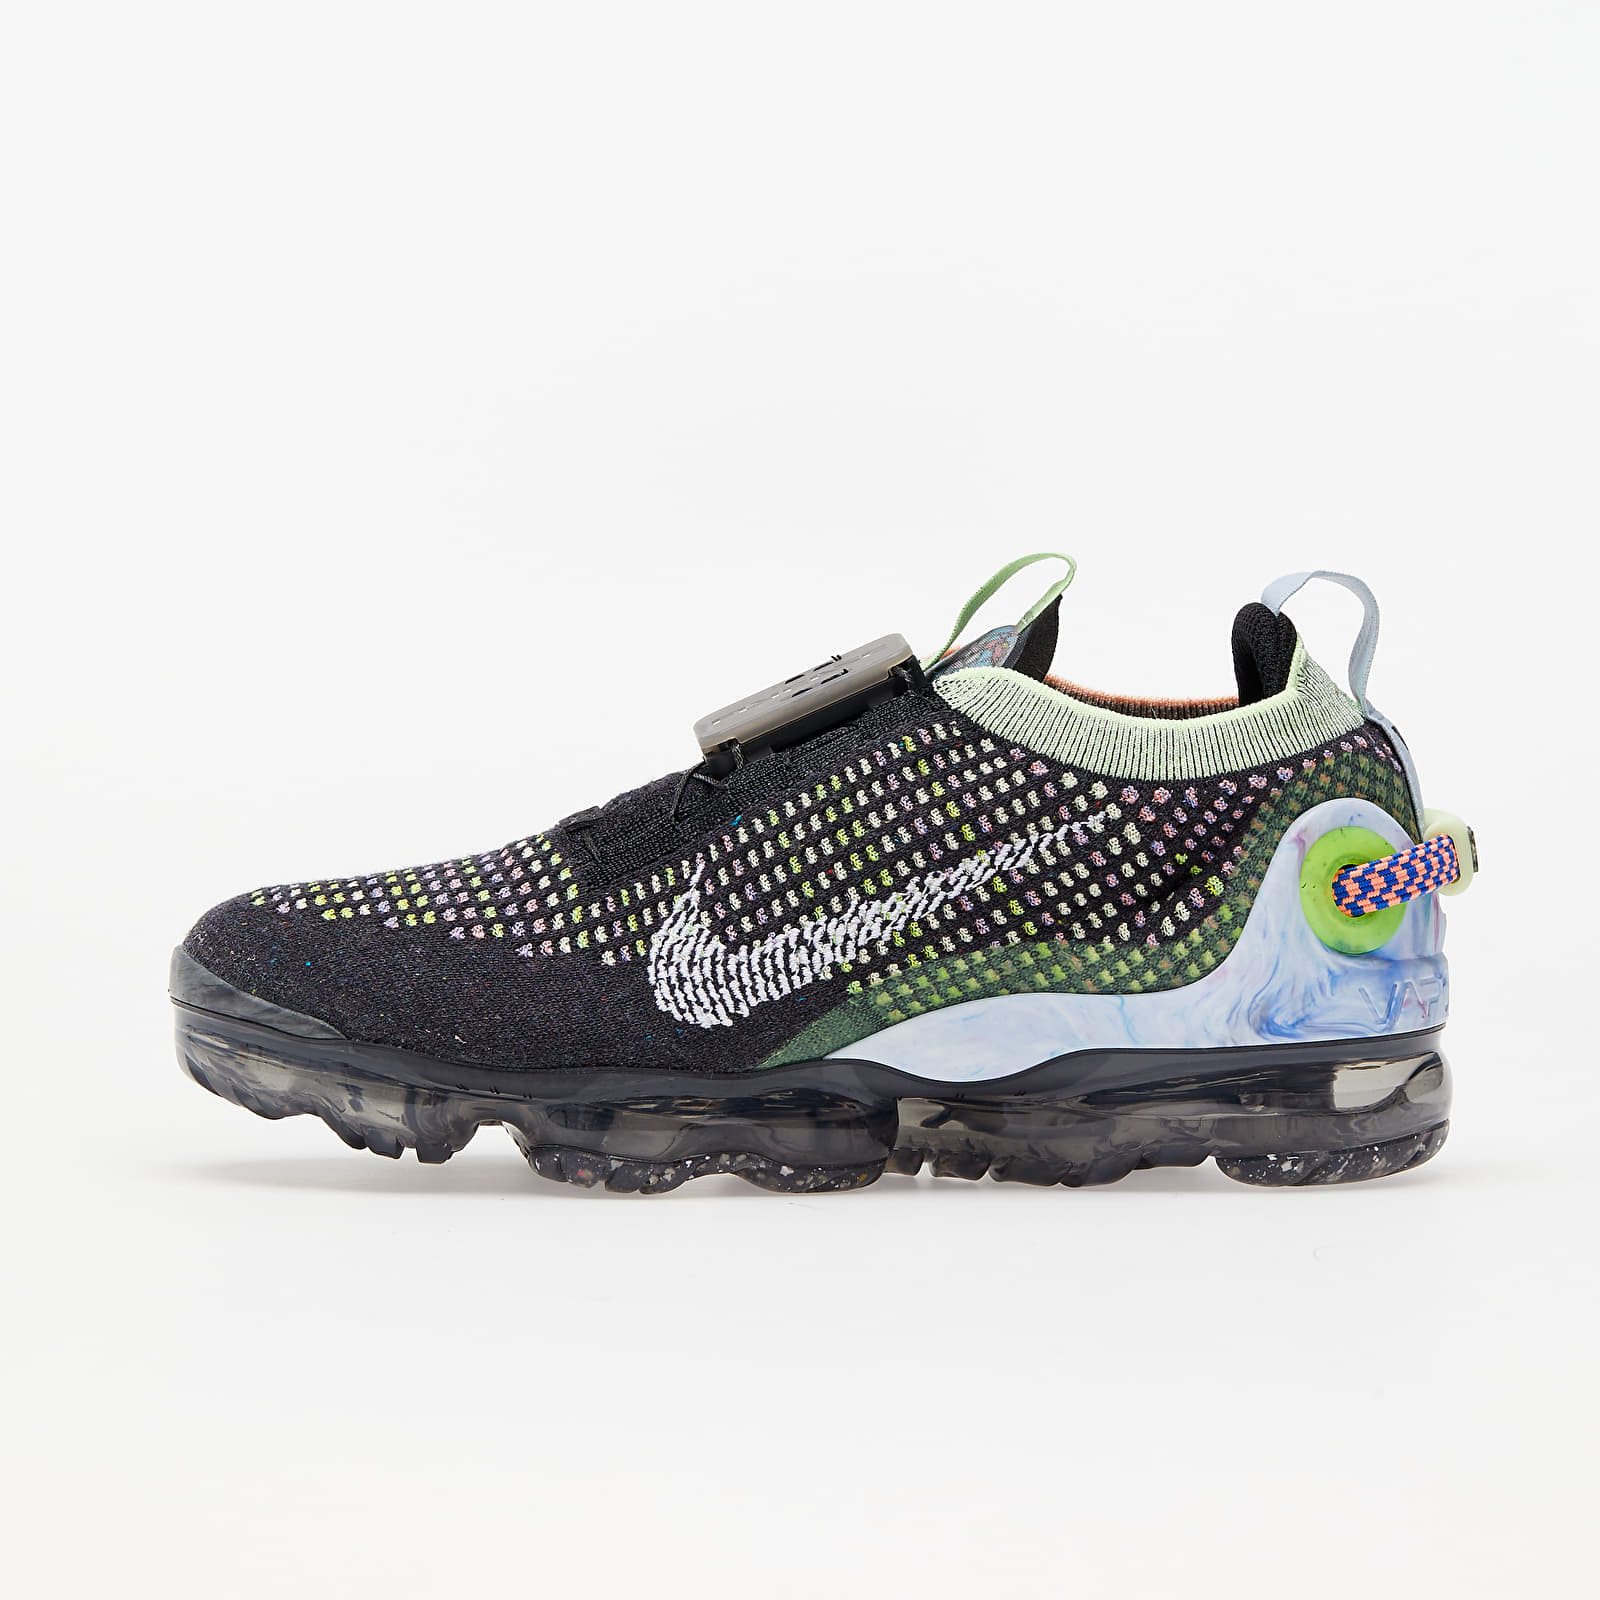 Nike W Air Vapormax 2020 Fk Black/ White-Barely Volt-Atomic Pink EUR 38.5